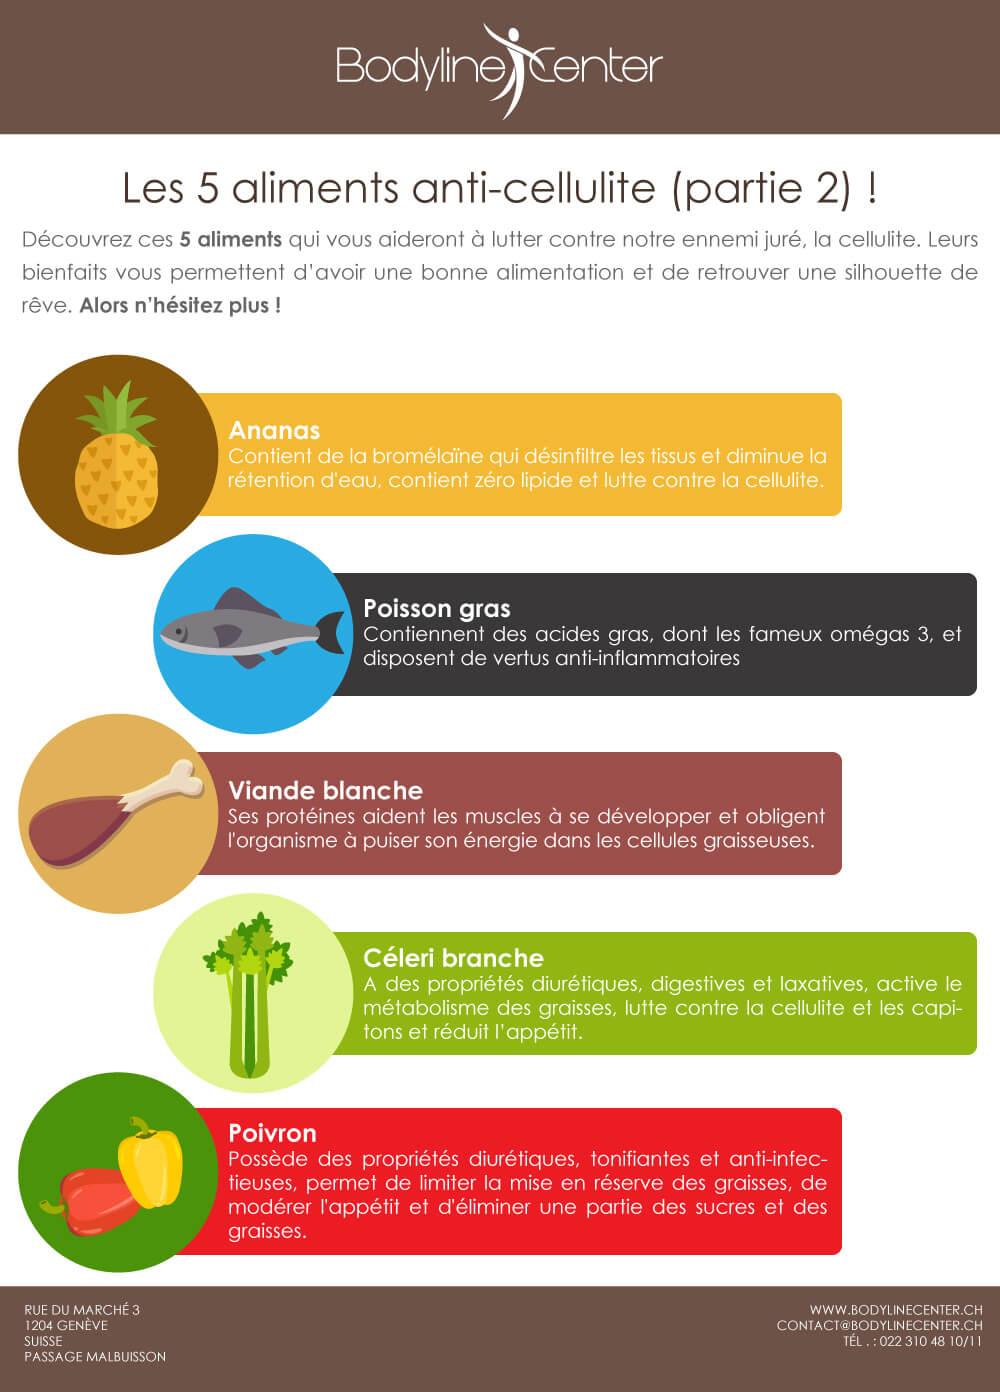 Les 5 aliments anti-cellulite ! - BodyLine Center